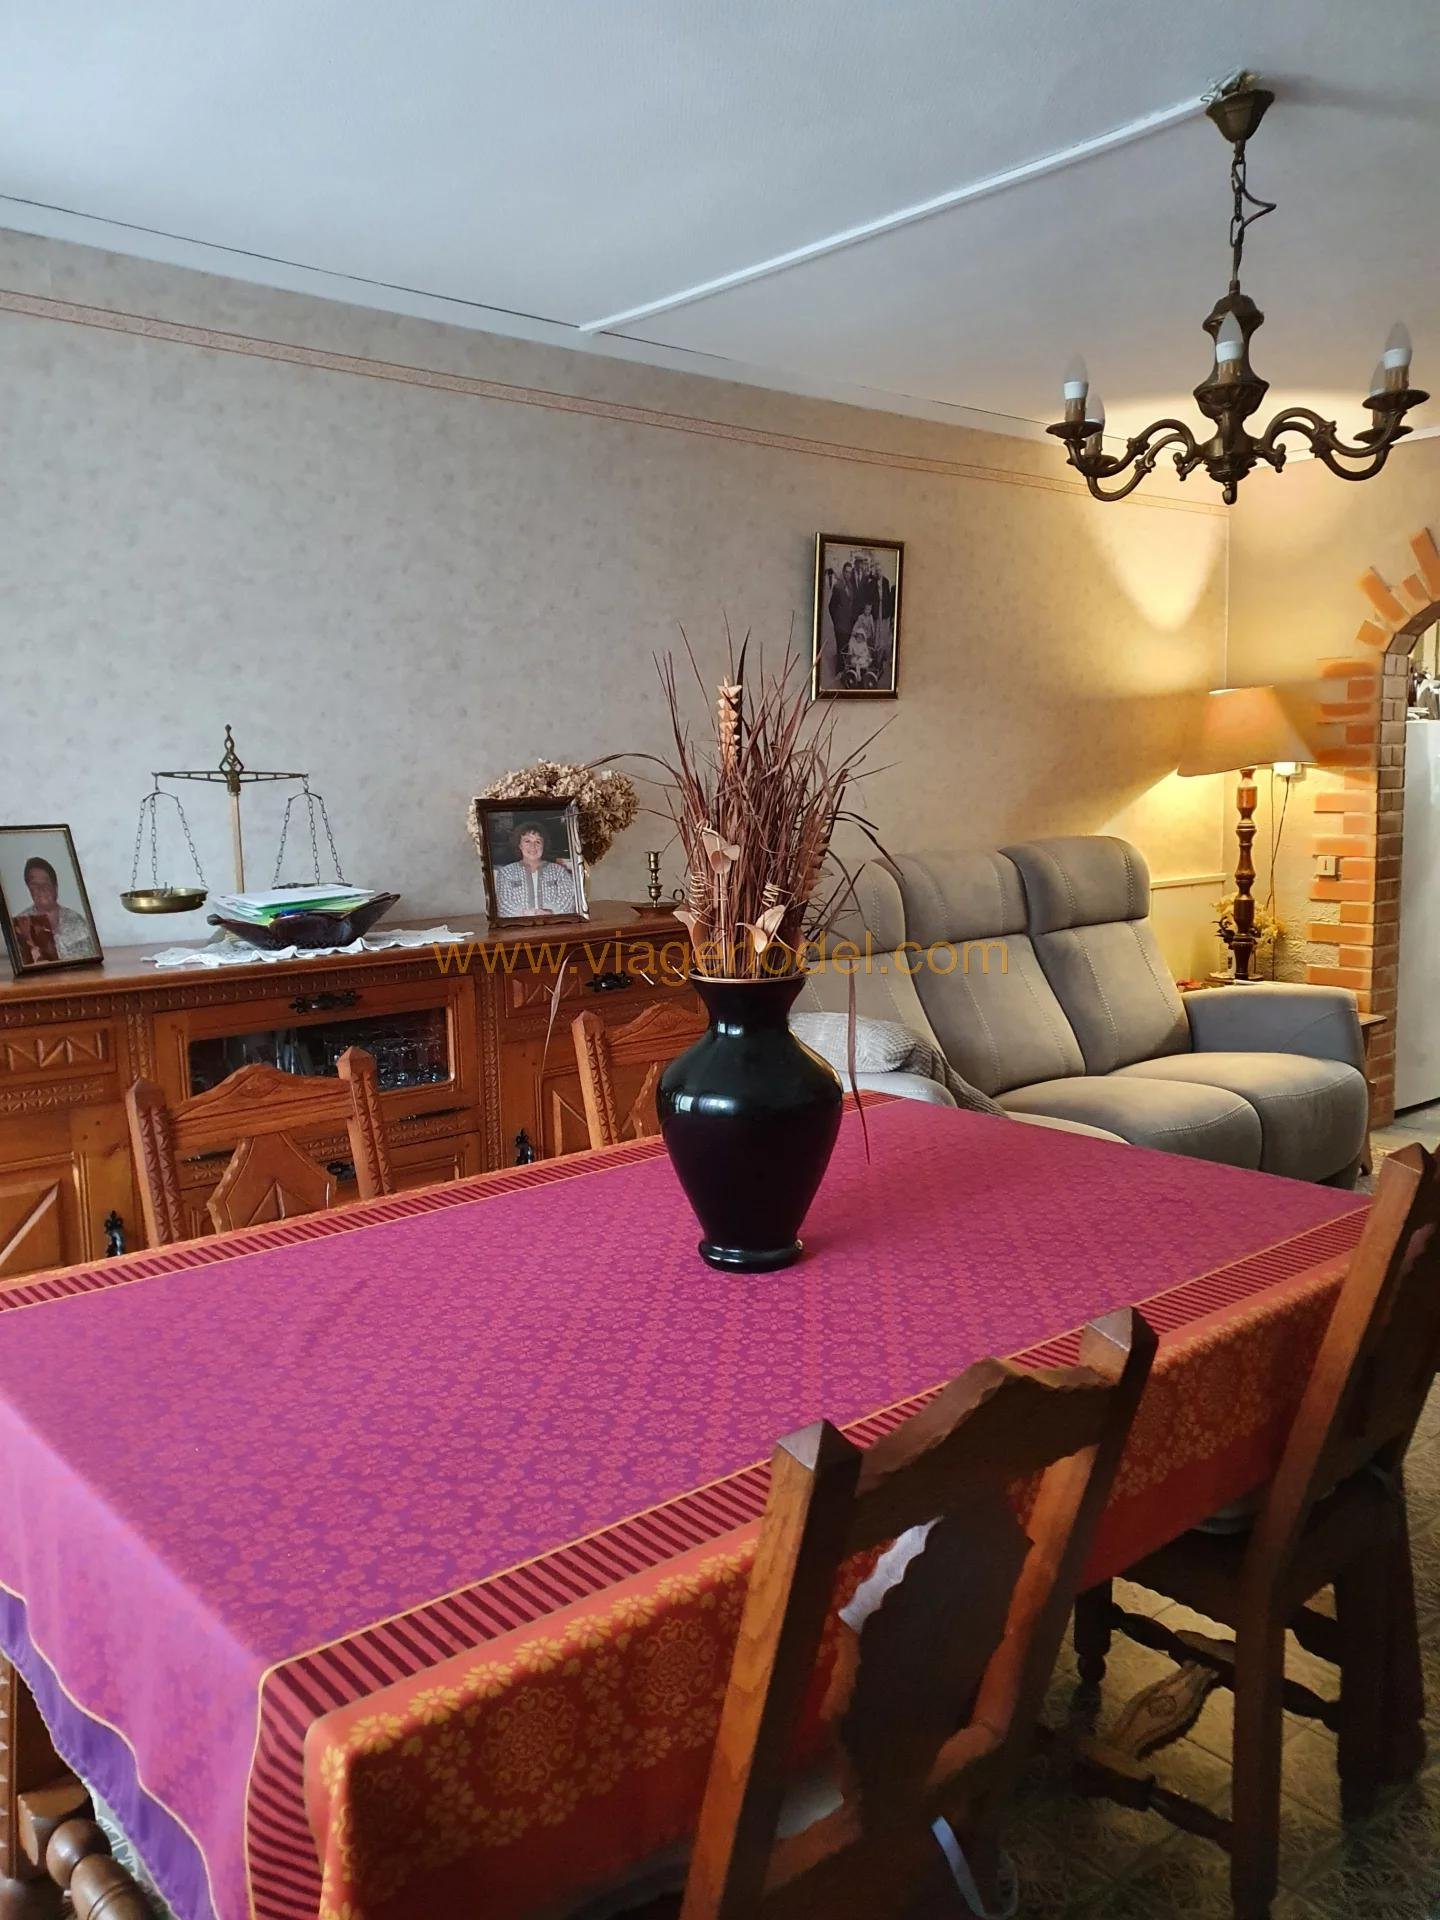 Ref. annonce : 8410 - WARCQ (08) VIAGER OCCUPE